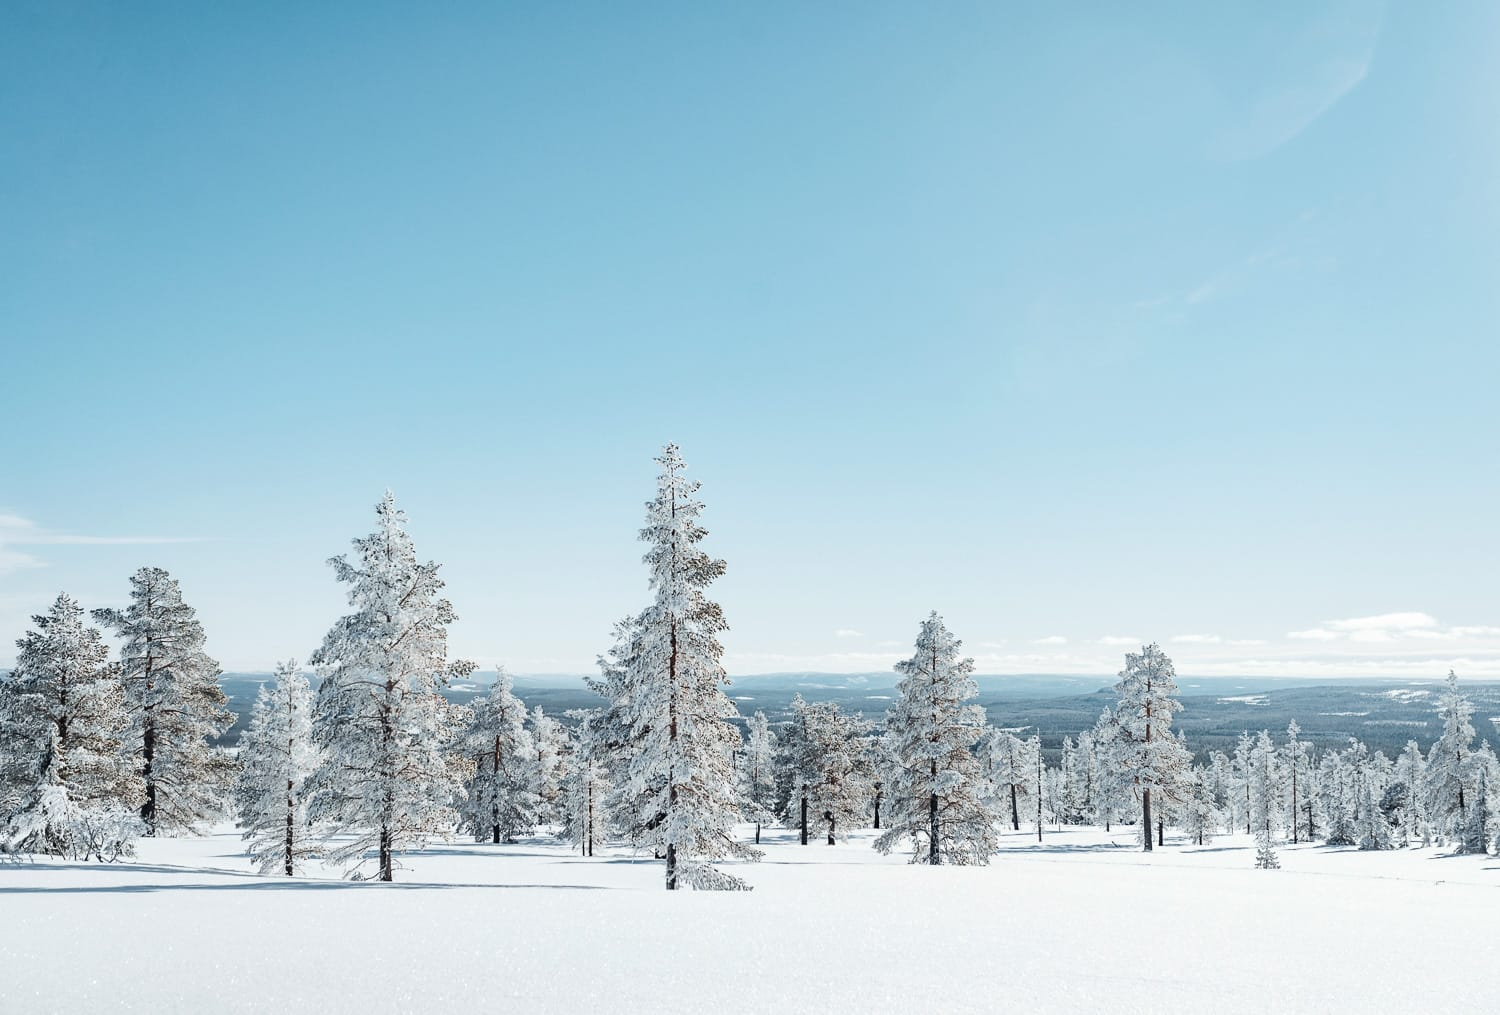 Winter landscape in northern Sweden